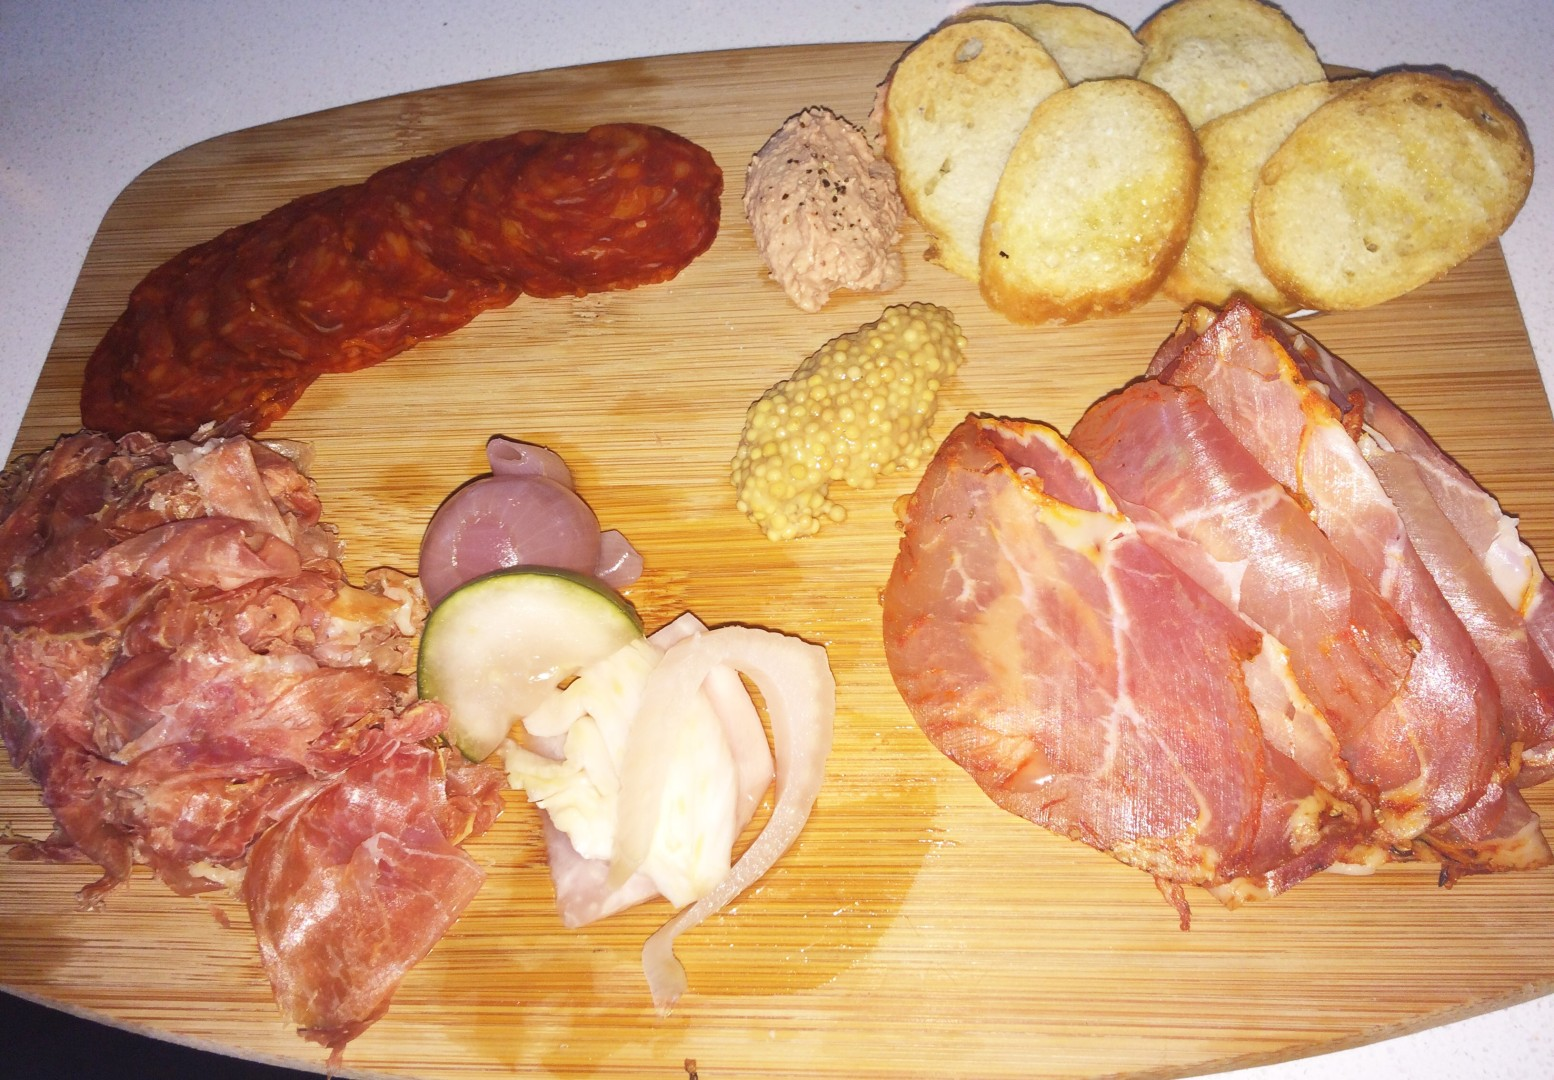 Embutidos, a charcuterie platter. The chorizo, in the top left, is the real deal, the slice-and-nibble sausage imported from Spain. Also pictured: chicken pate, pickled mustard seeds, house-pickled vegetables, jamon Serrano,and lomo.